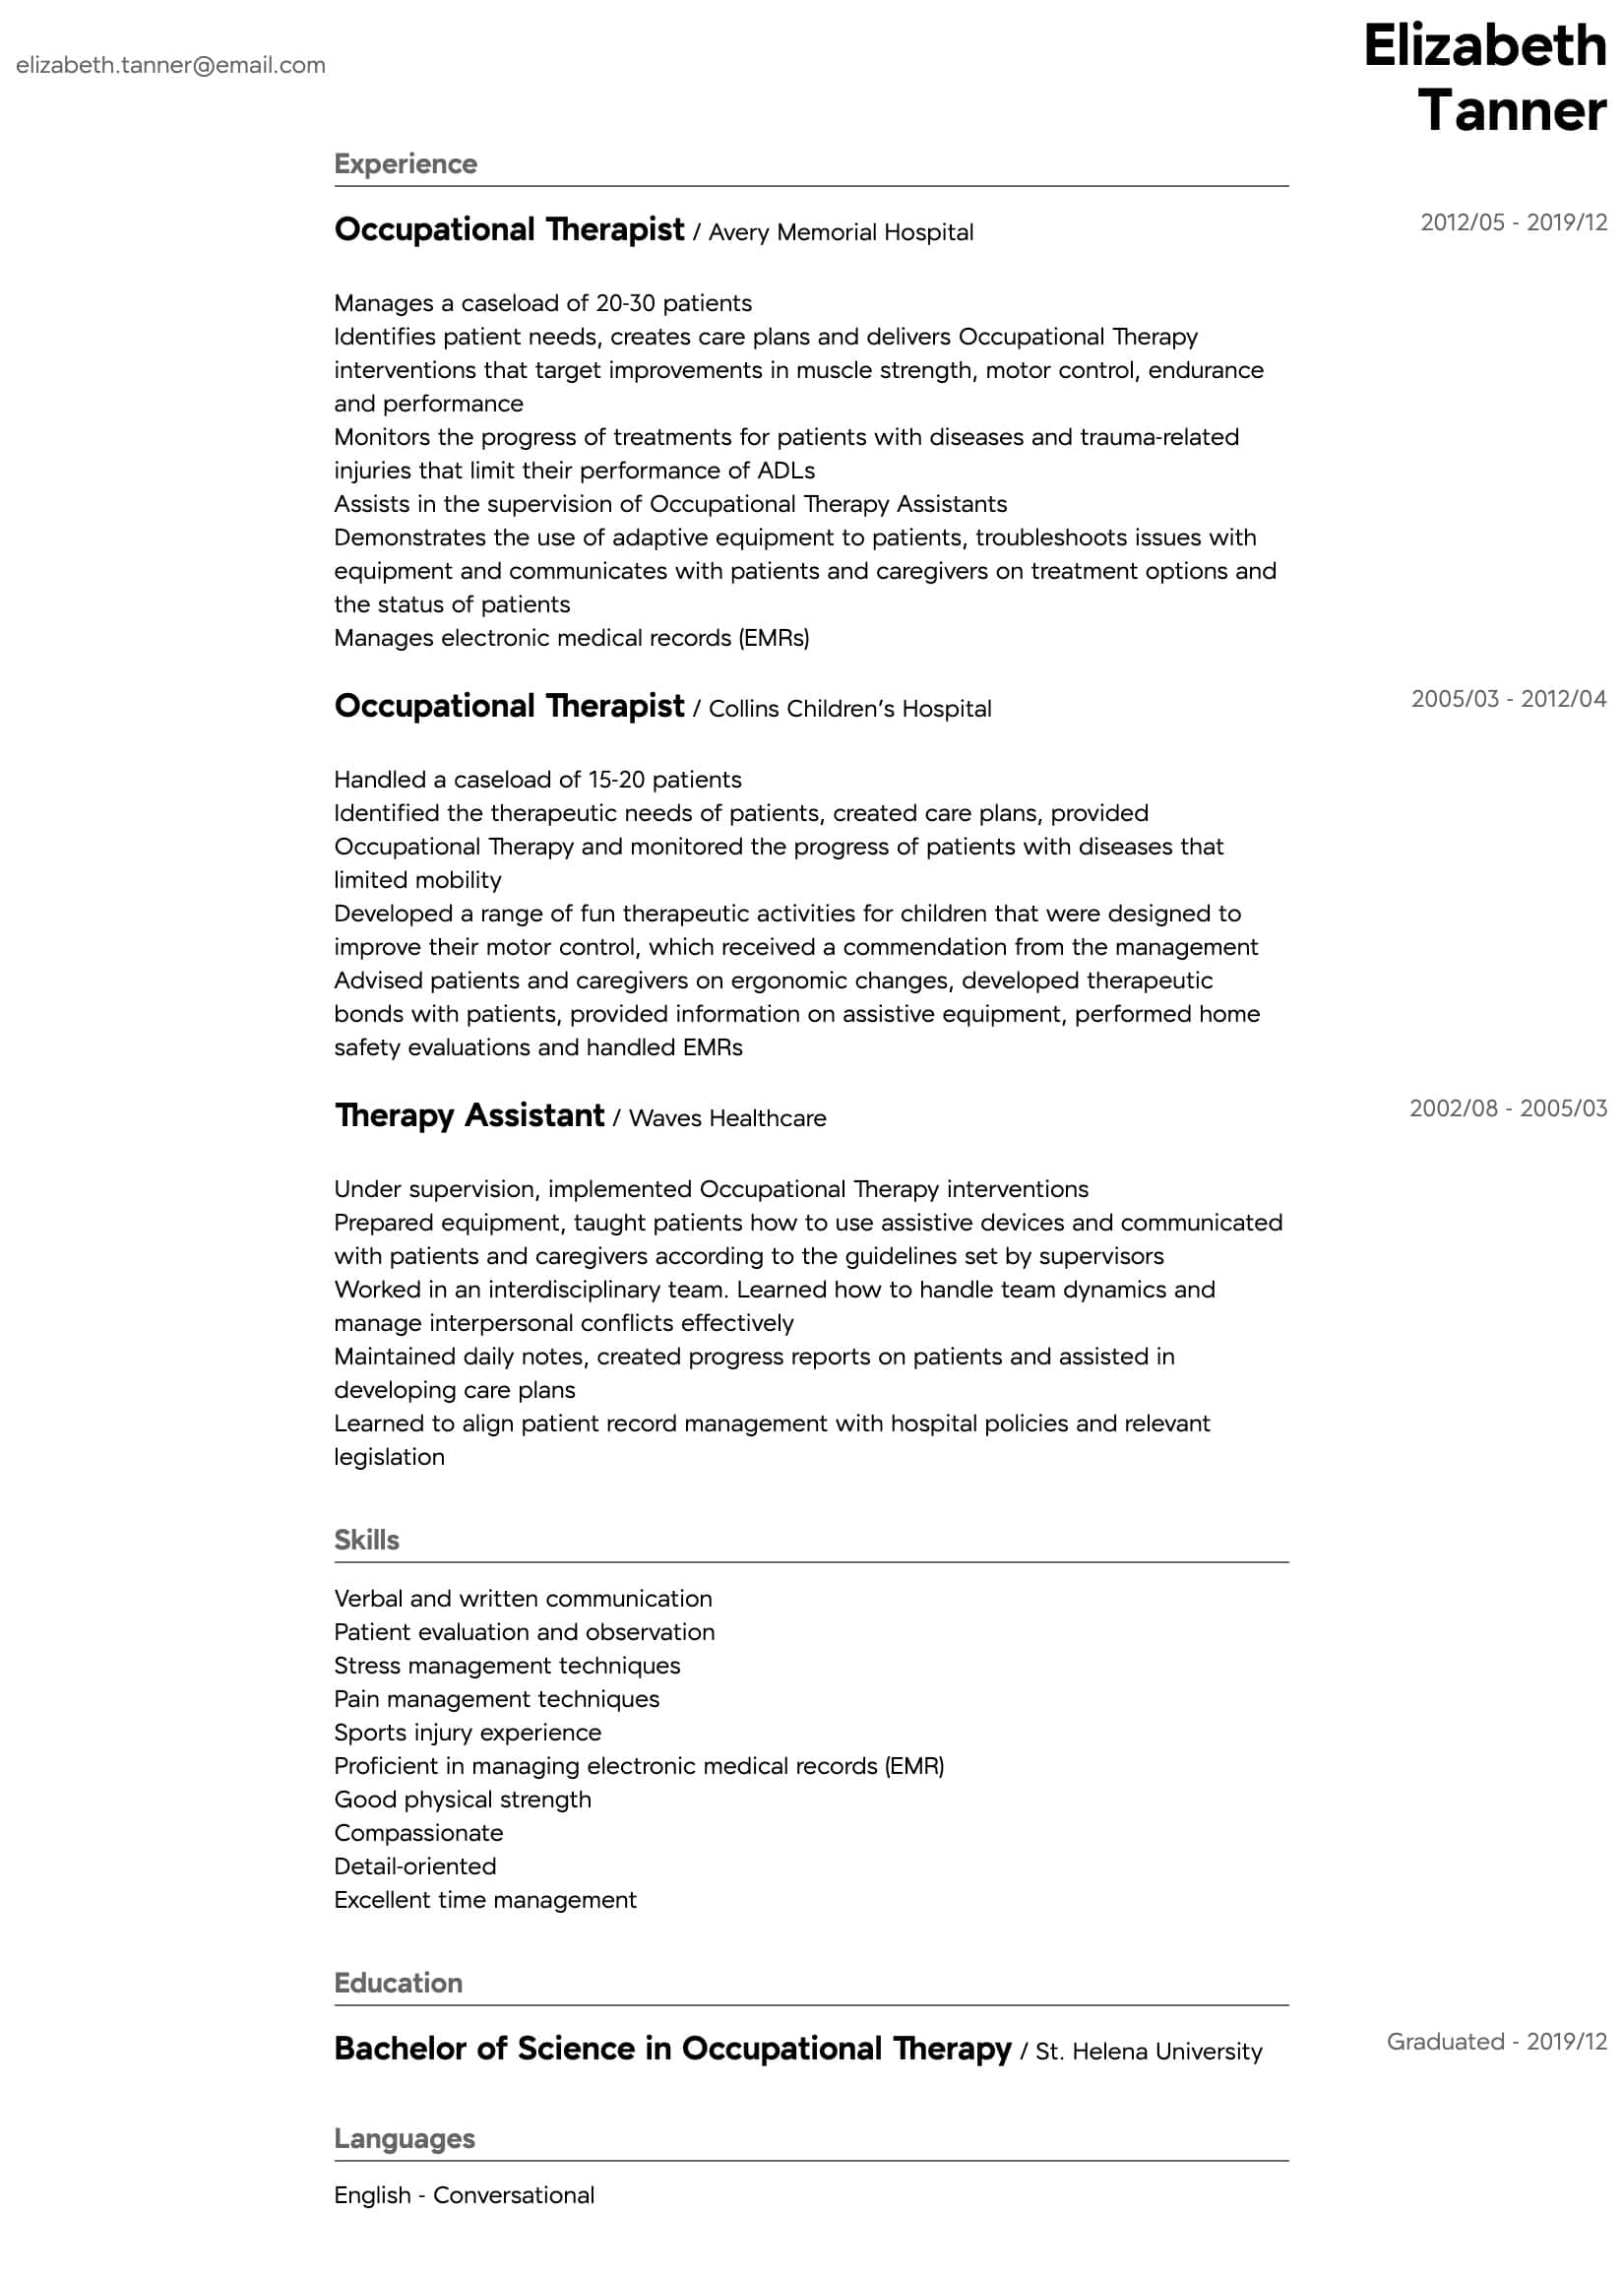 occupational therapy resume samples all experience levels entry level intermediate Resume Entry Level Occupational Therapy Resume